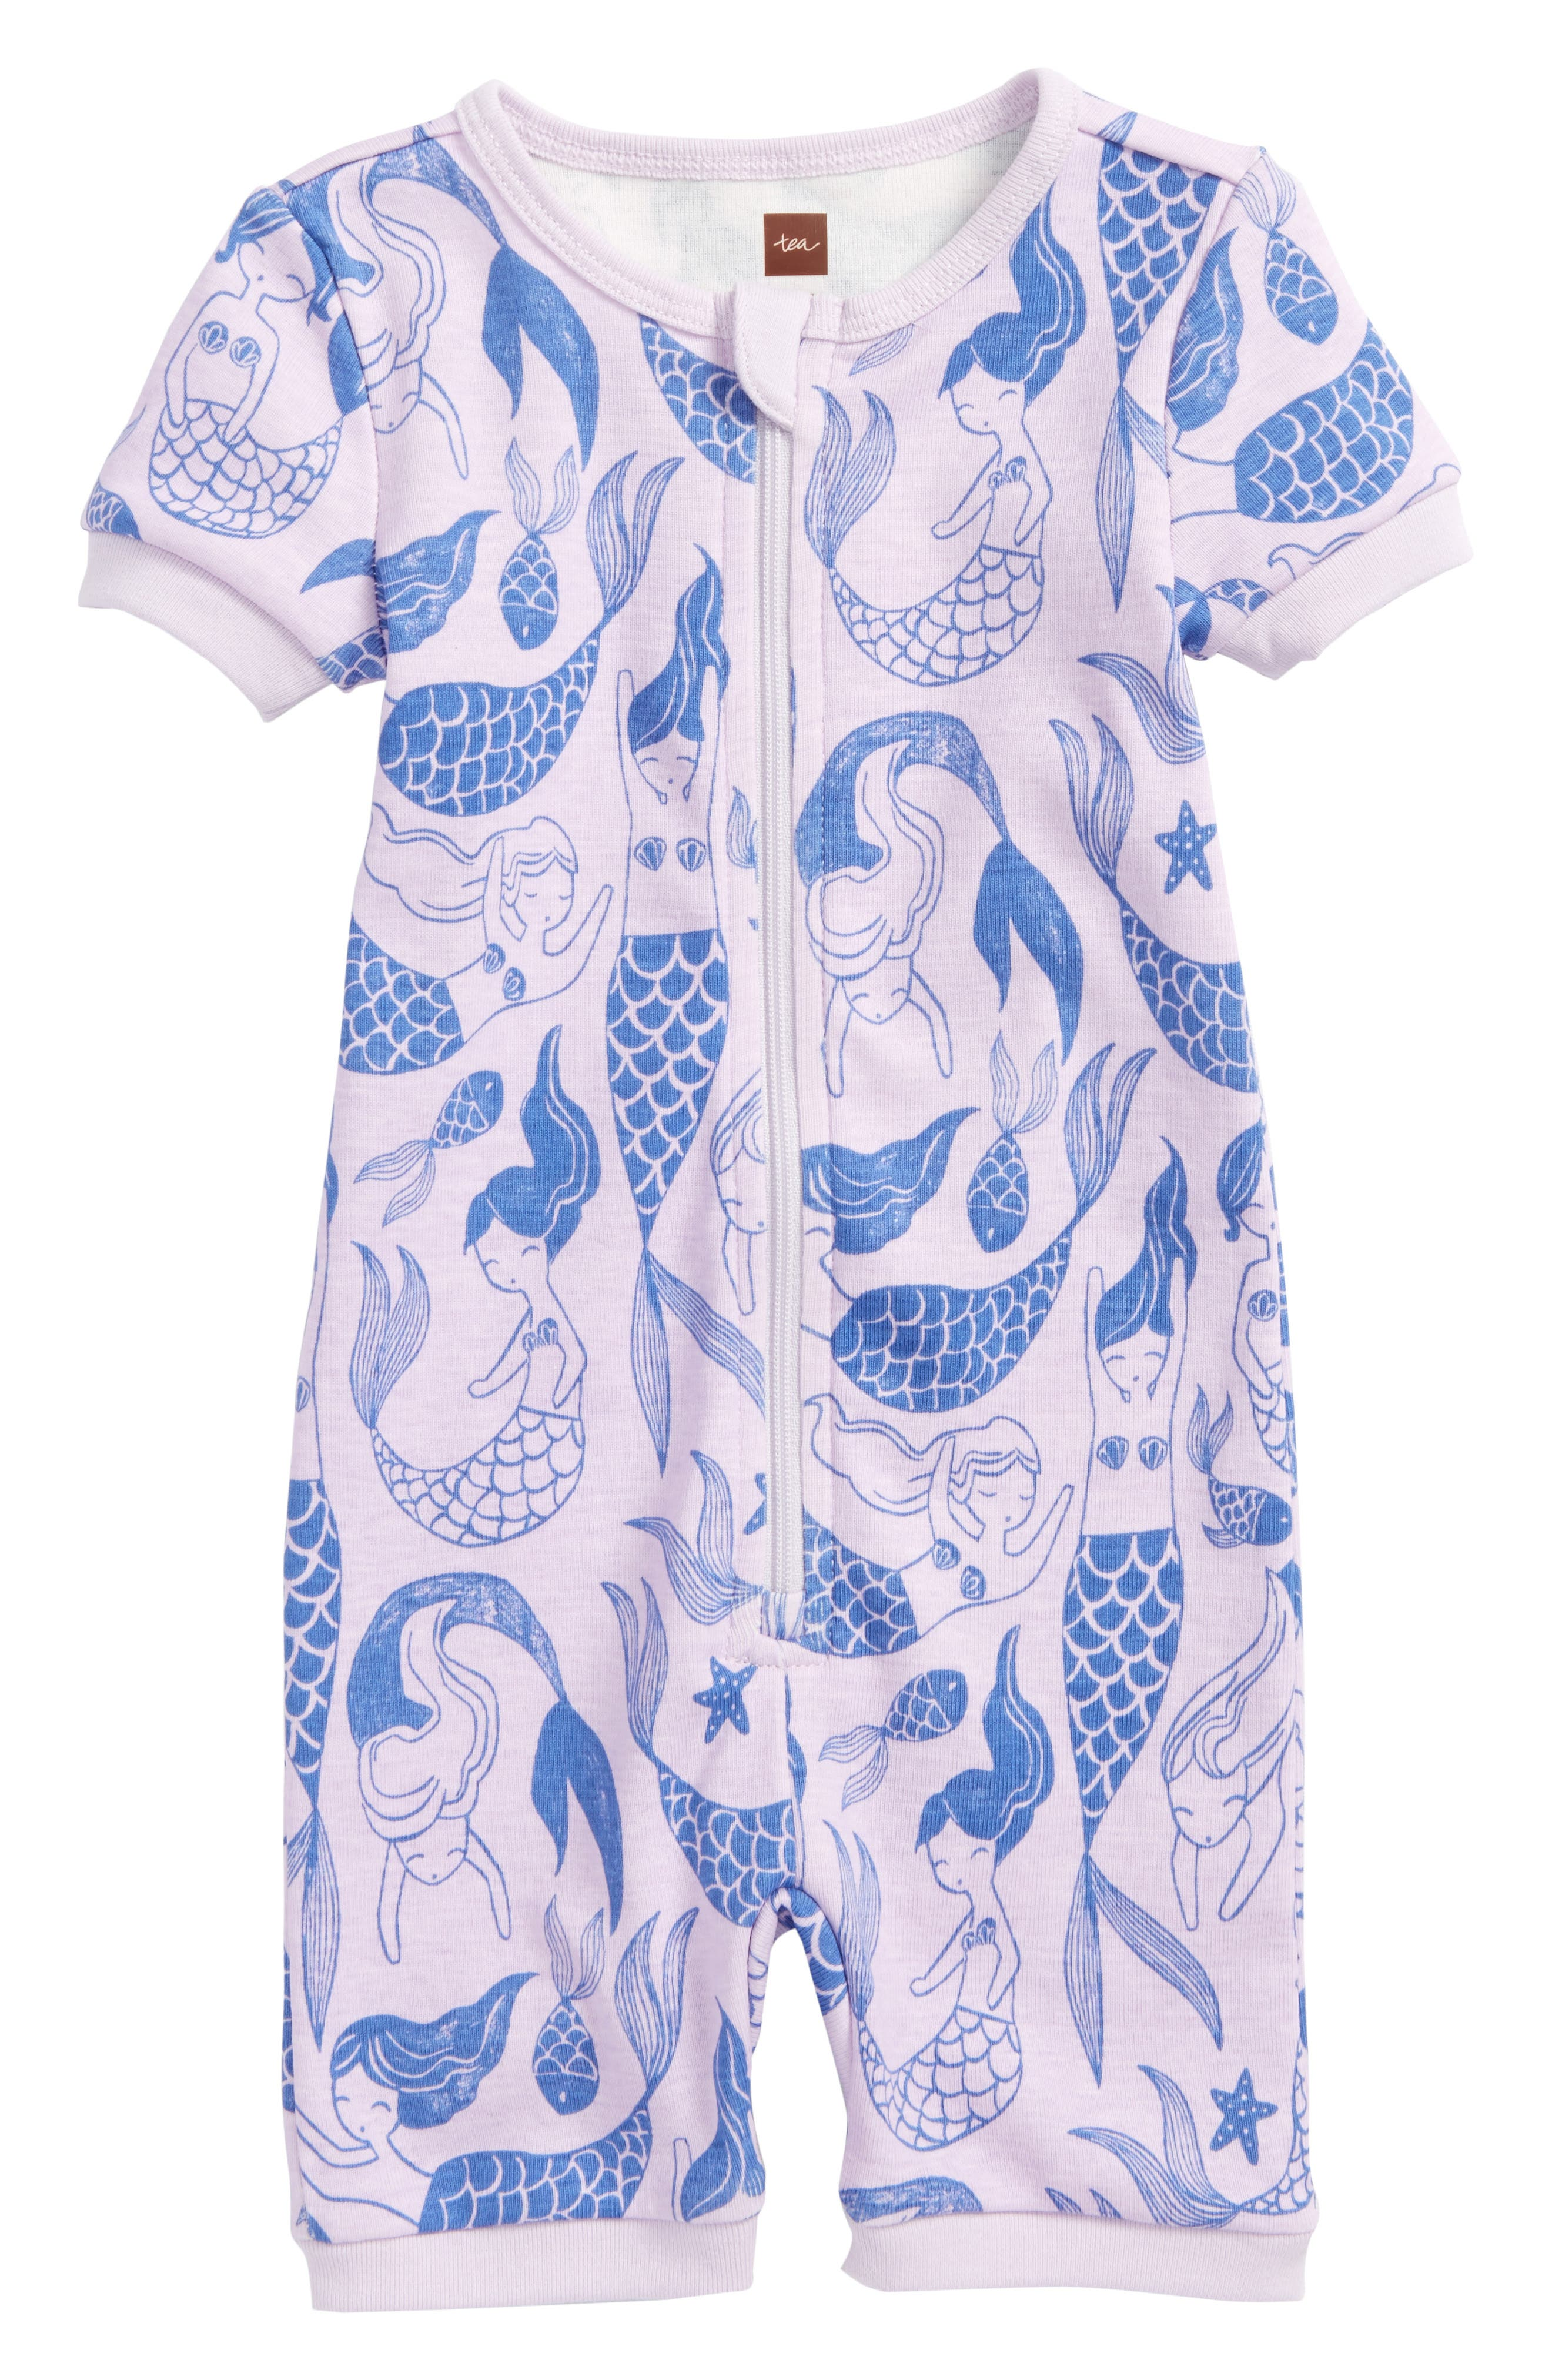 Short Sleeve Fitted One-Piece Pajamas,                             Main thumbnail 1, color,